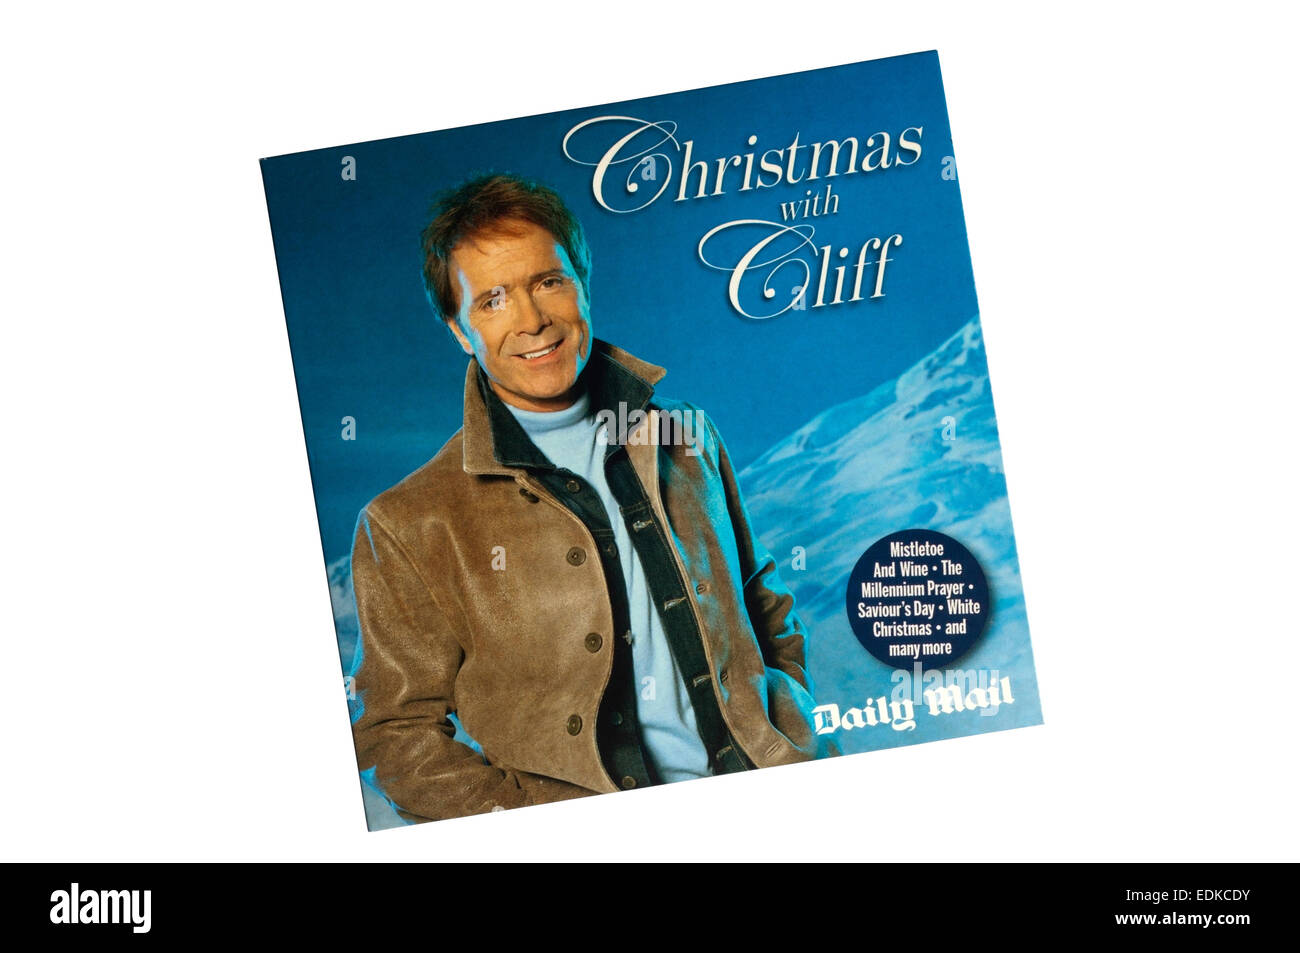 Christmas with Cliff was a Christmas record of Cliff Richard songs given away free with the Daily Mail newspaper. - Stock Image